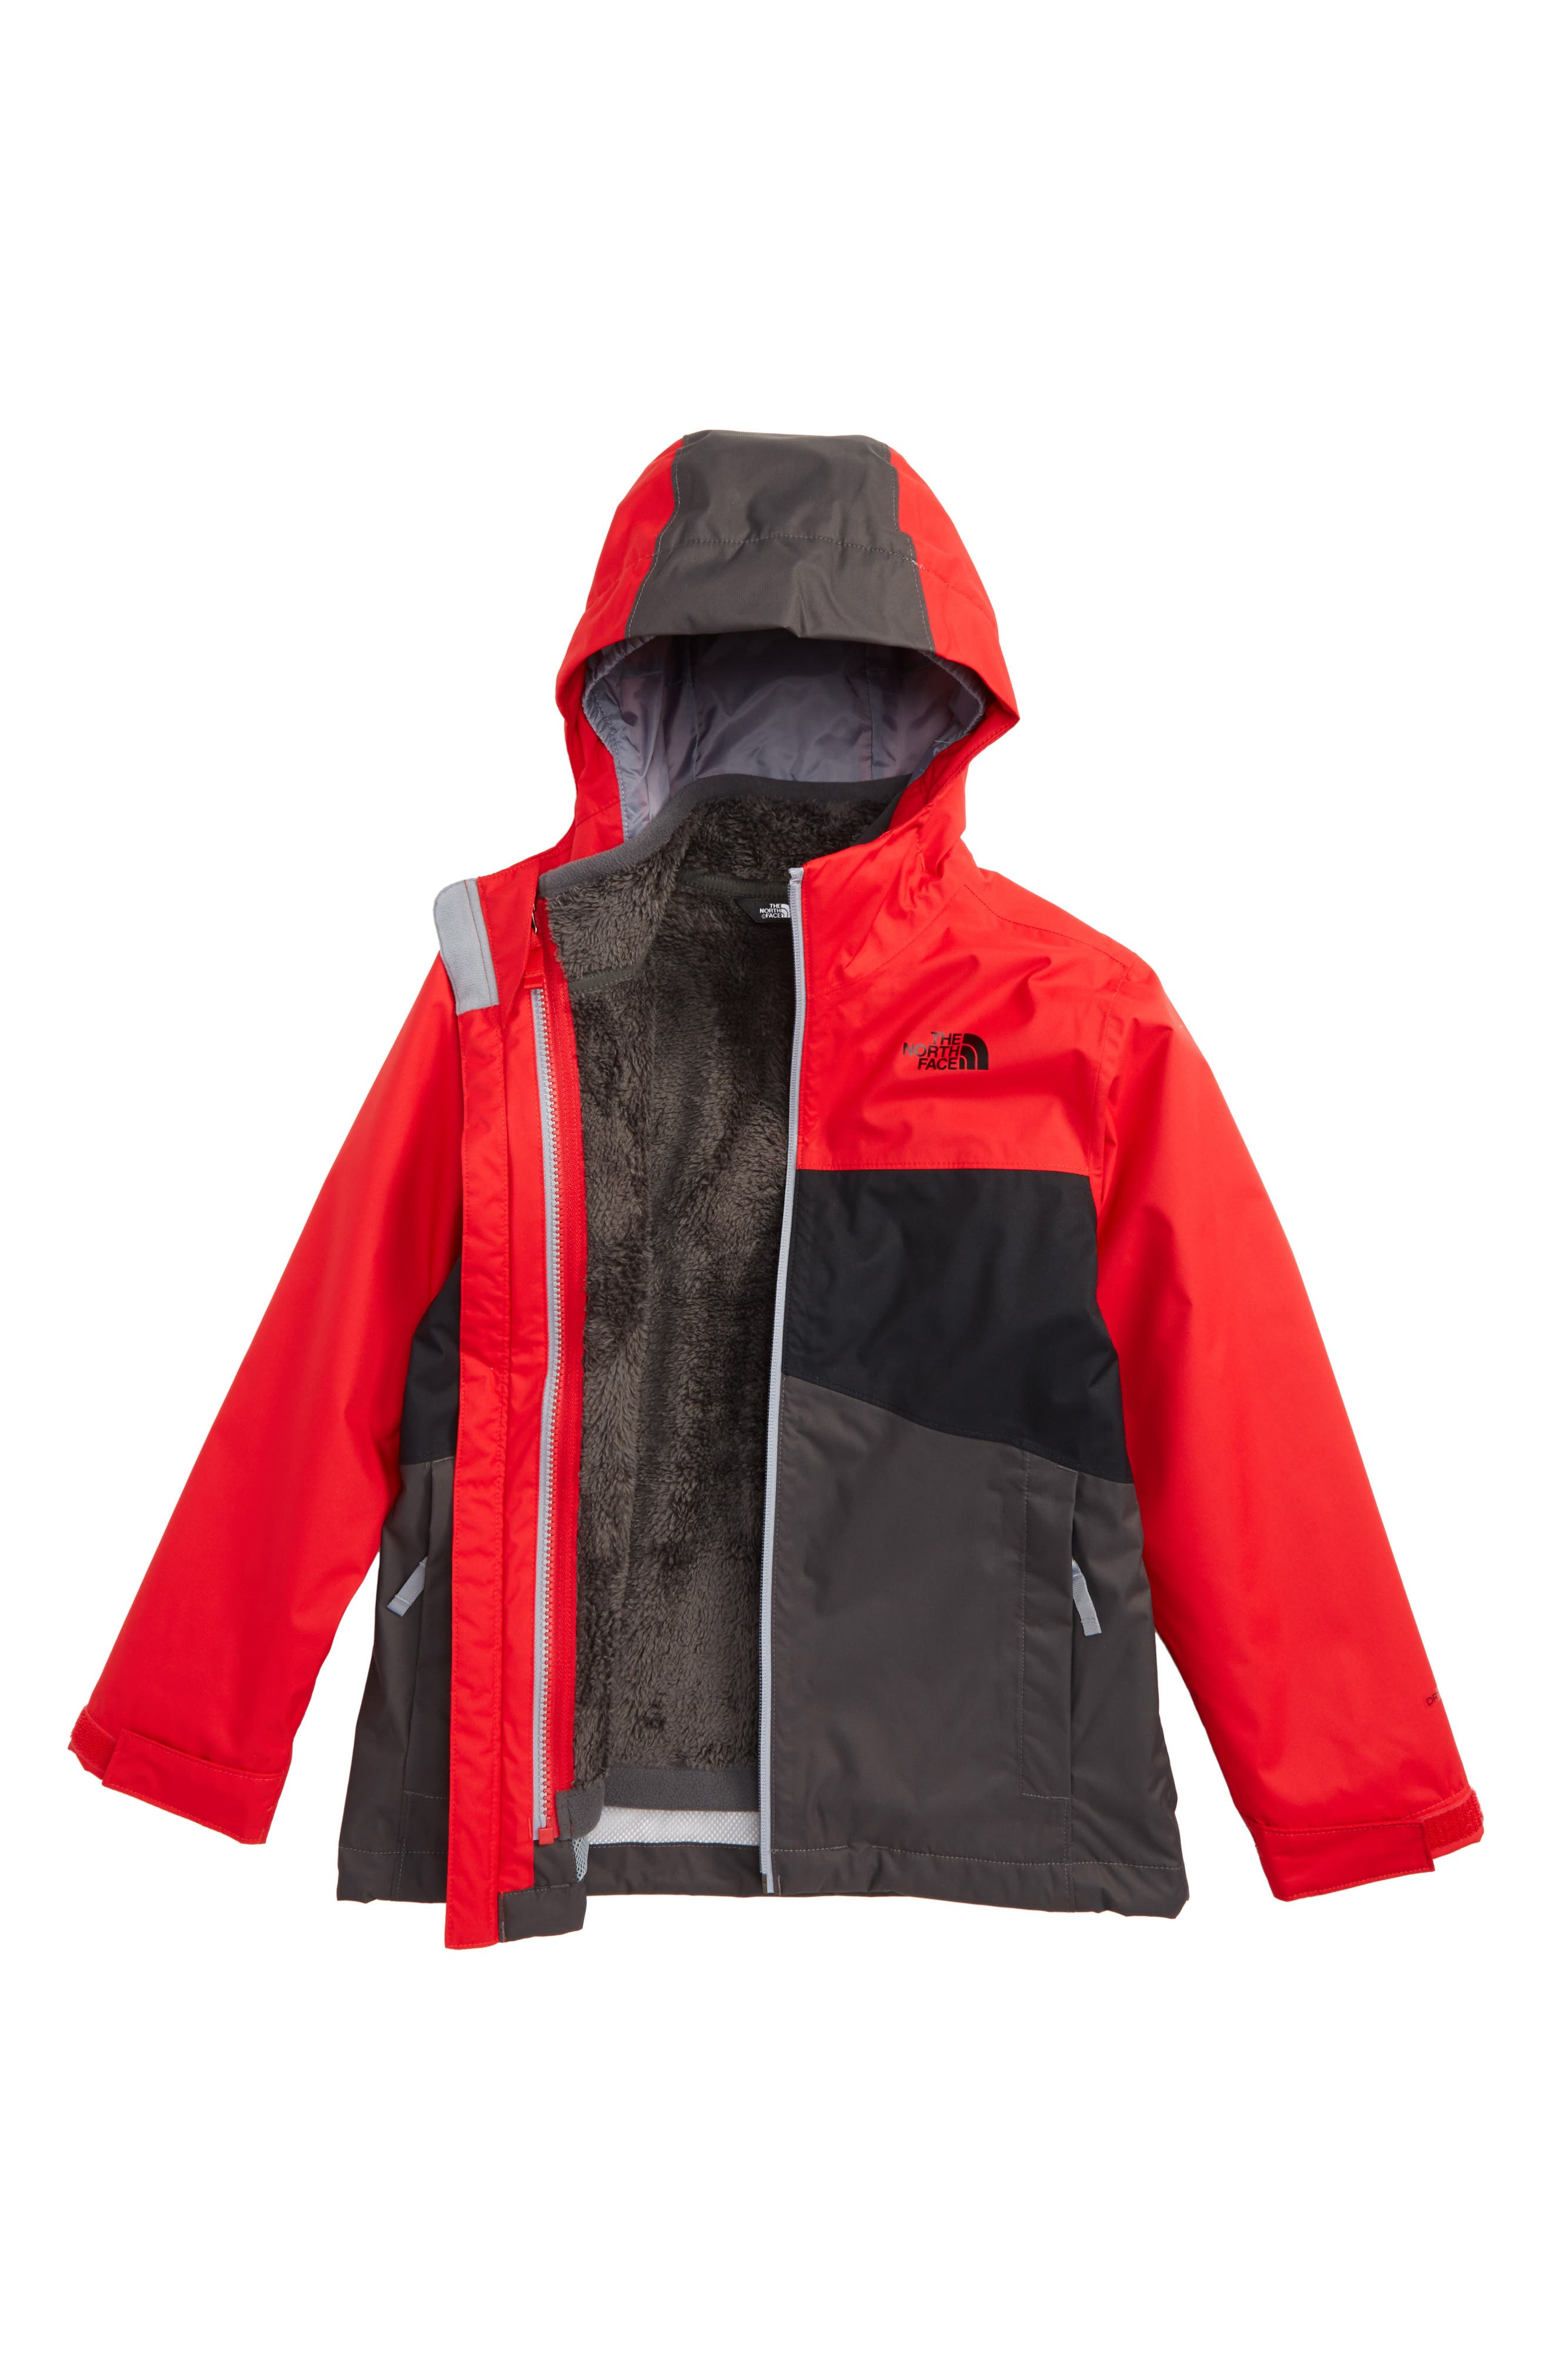 Chimborazo Triclimate<sup>®</sup> 3-in-1 Jacket,                         Main,                         color, Tnf Red